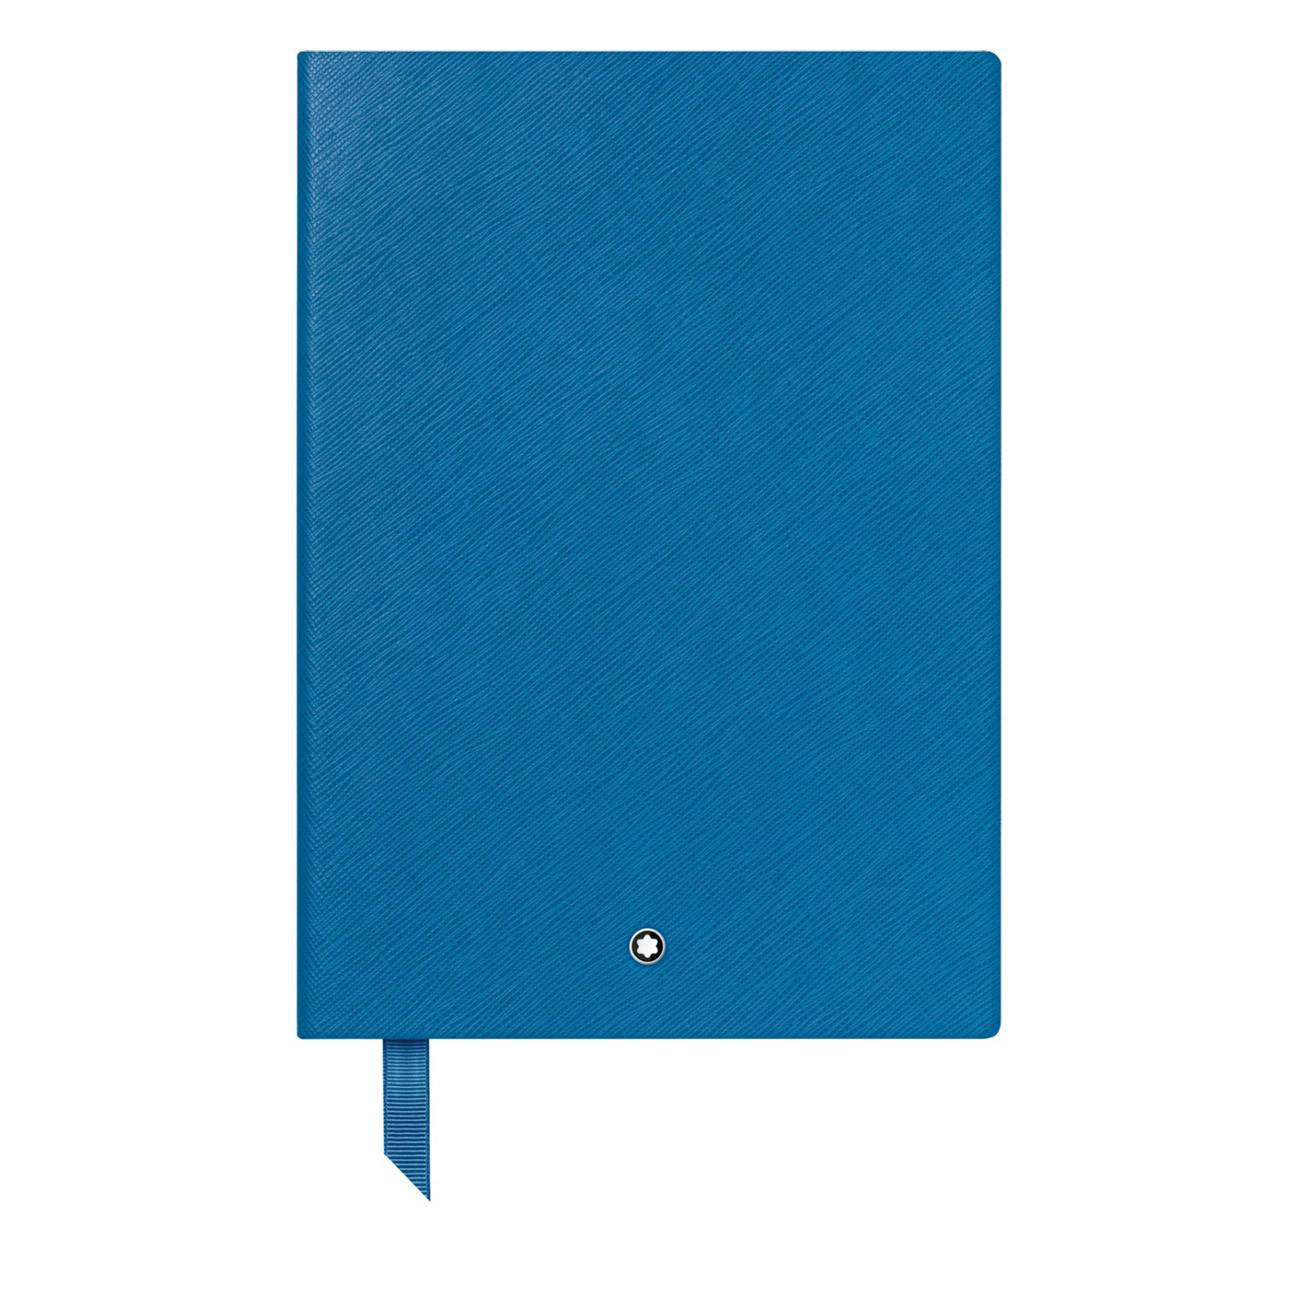 NOTEBOOK # 146 Lined - 192 Pages